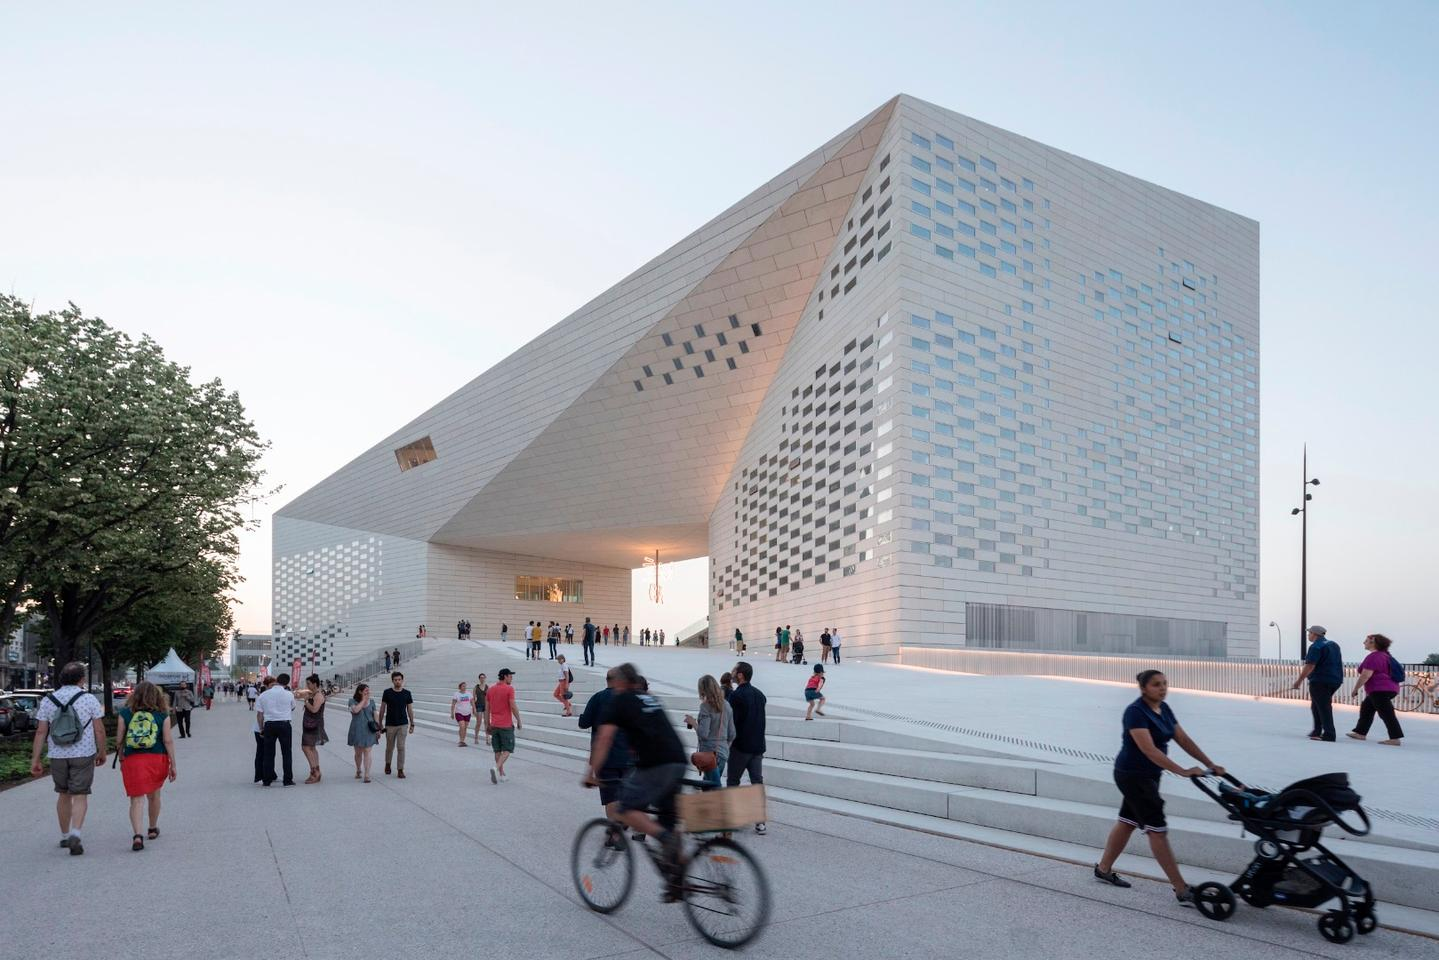 MÉCA'sfacade is made up of 4,800 prefabricated concrete panels that weighup to 1.6 tons each